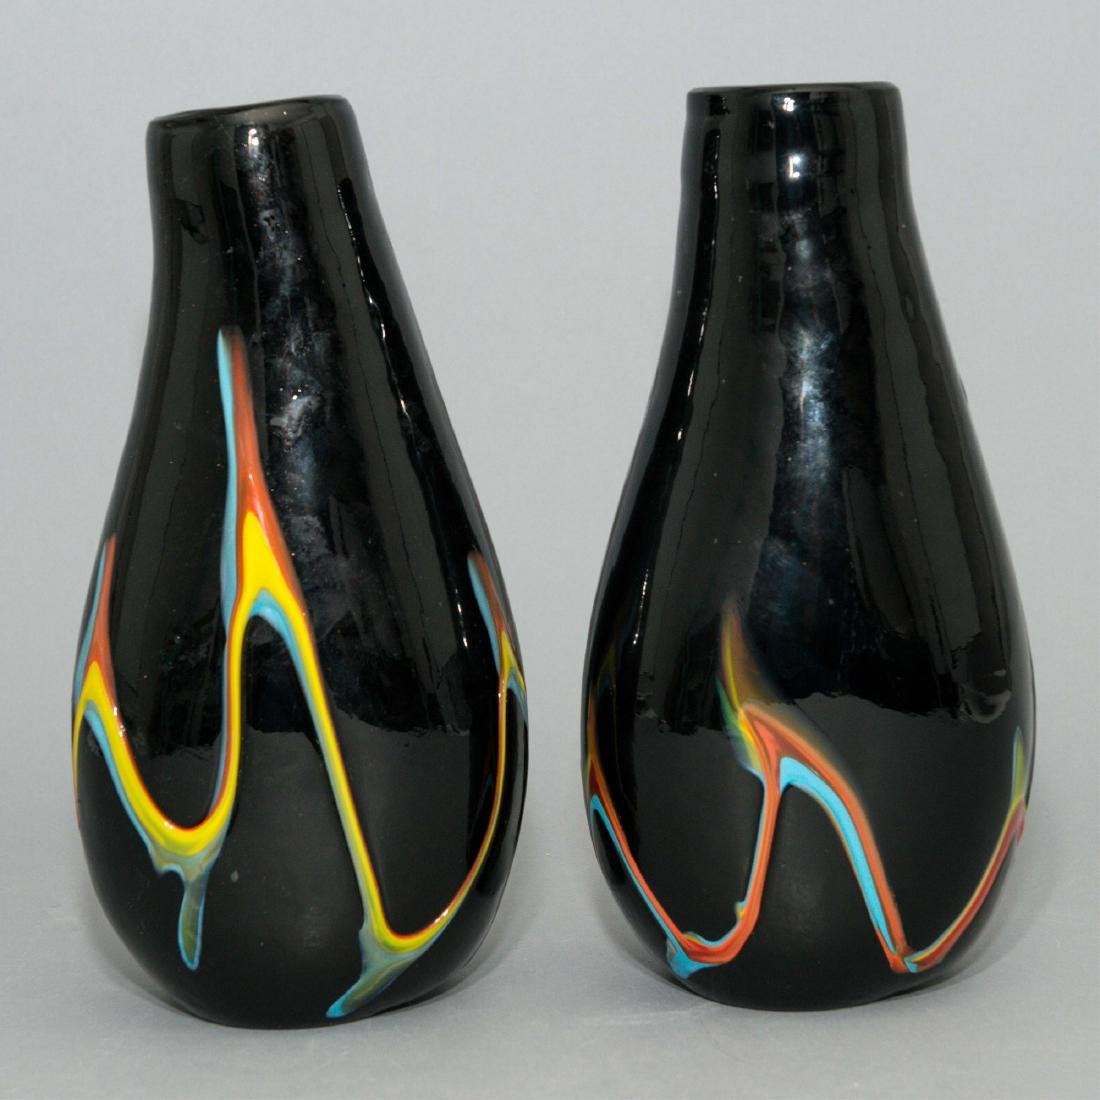 PAIR OF HAND-BLOWN AMERICAN DECORATIVE GLASS VASES - 3